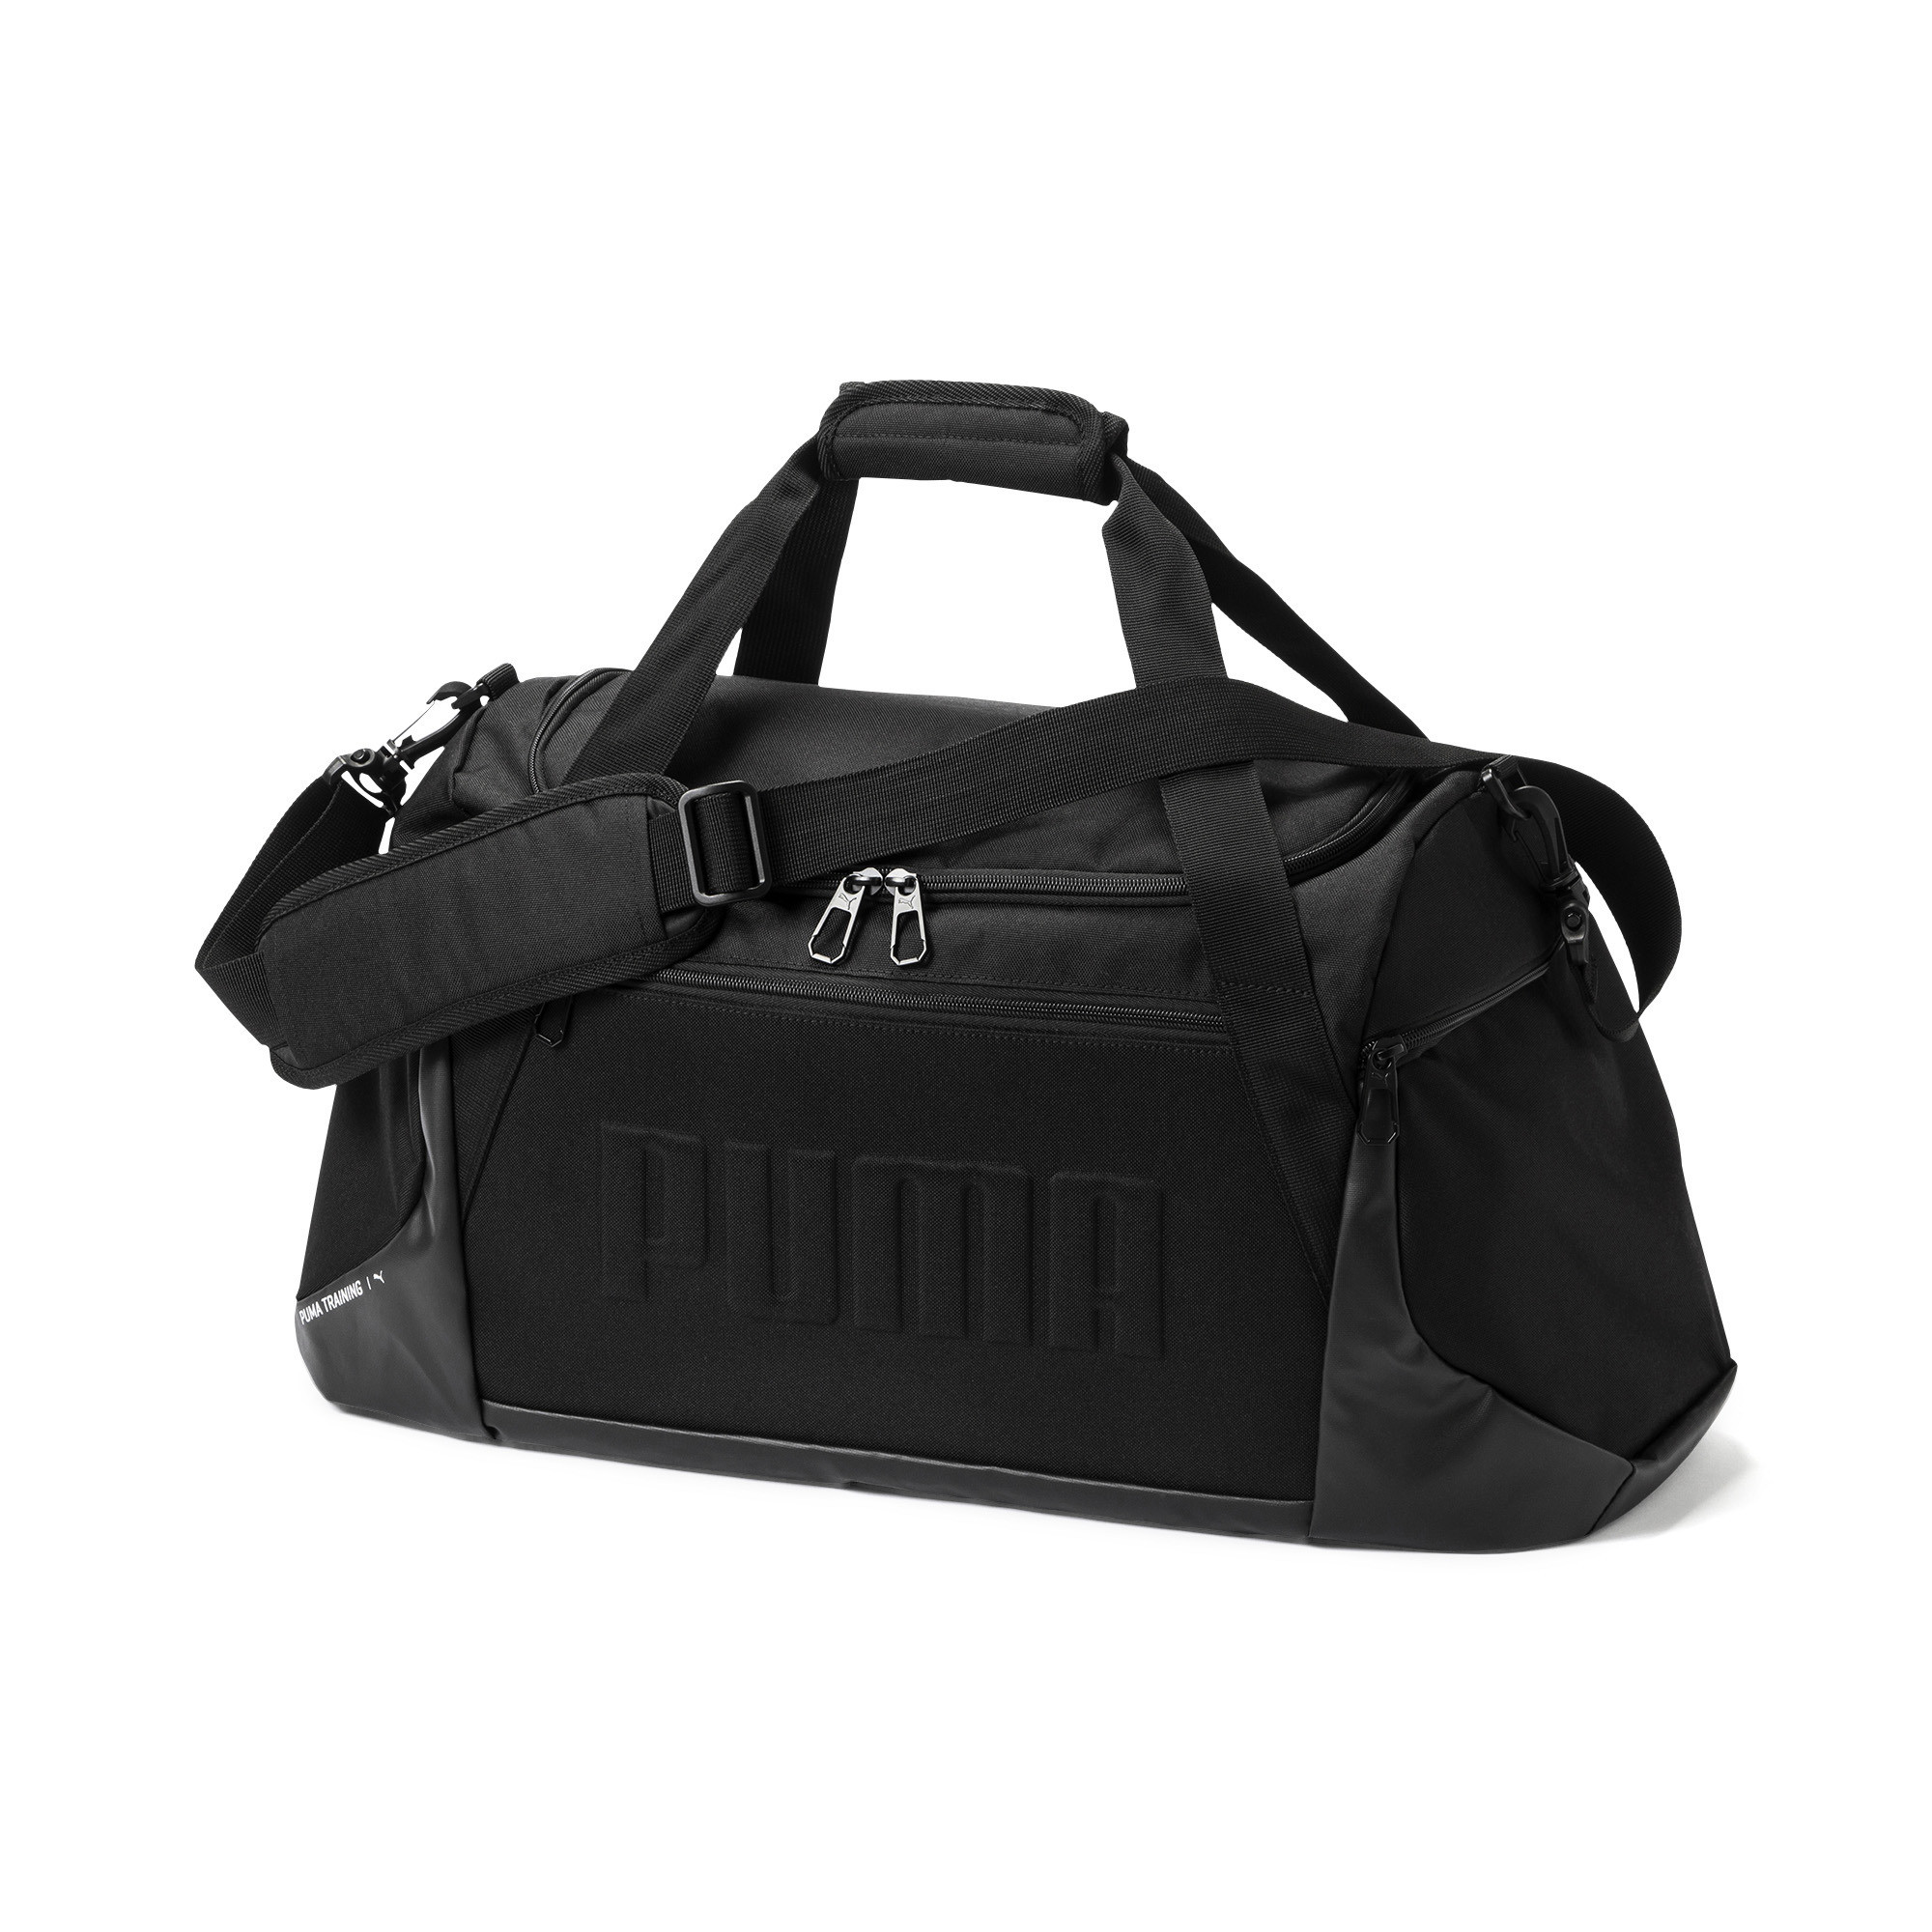 0fe882e95e1 GYM Medium Duffle Bag | 10 - Black | Puma